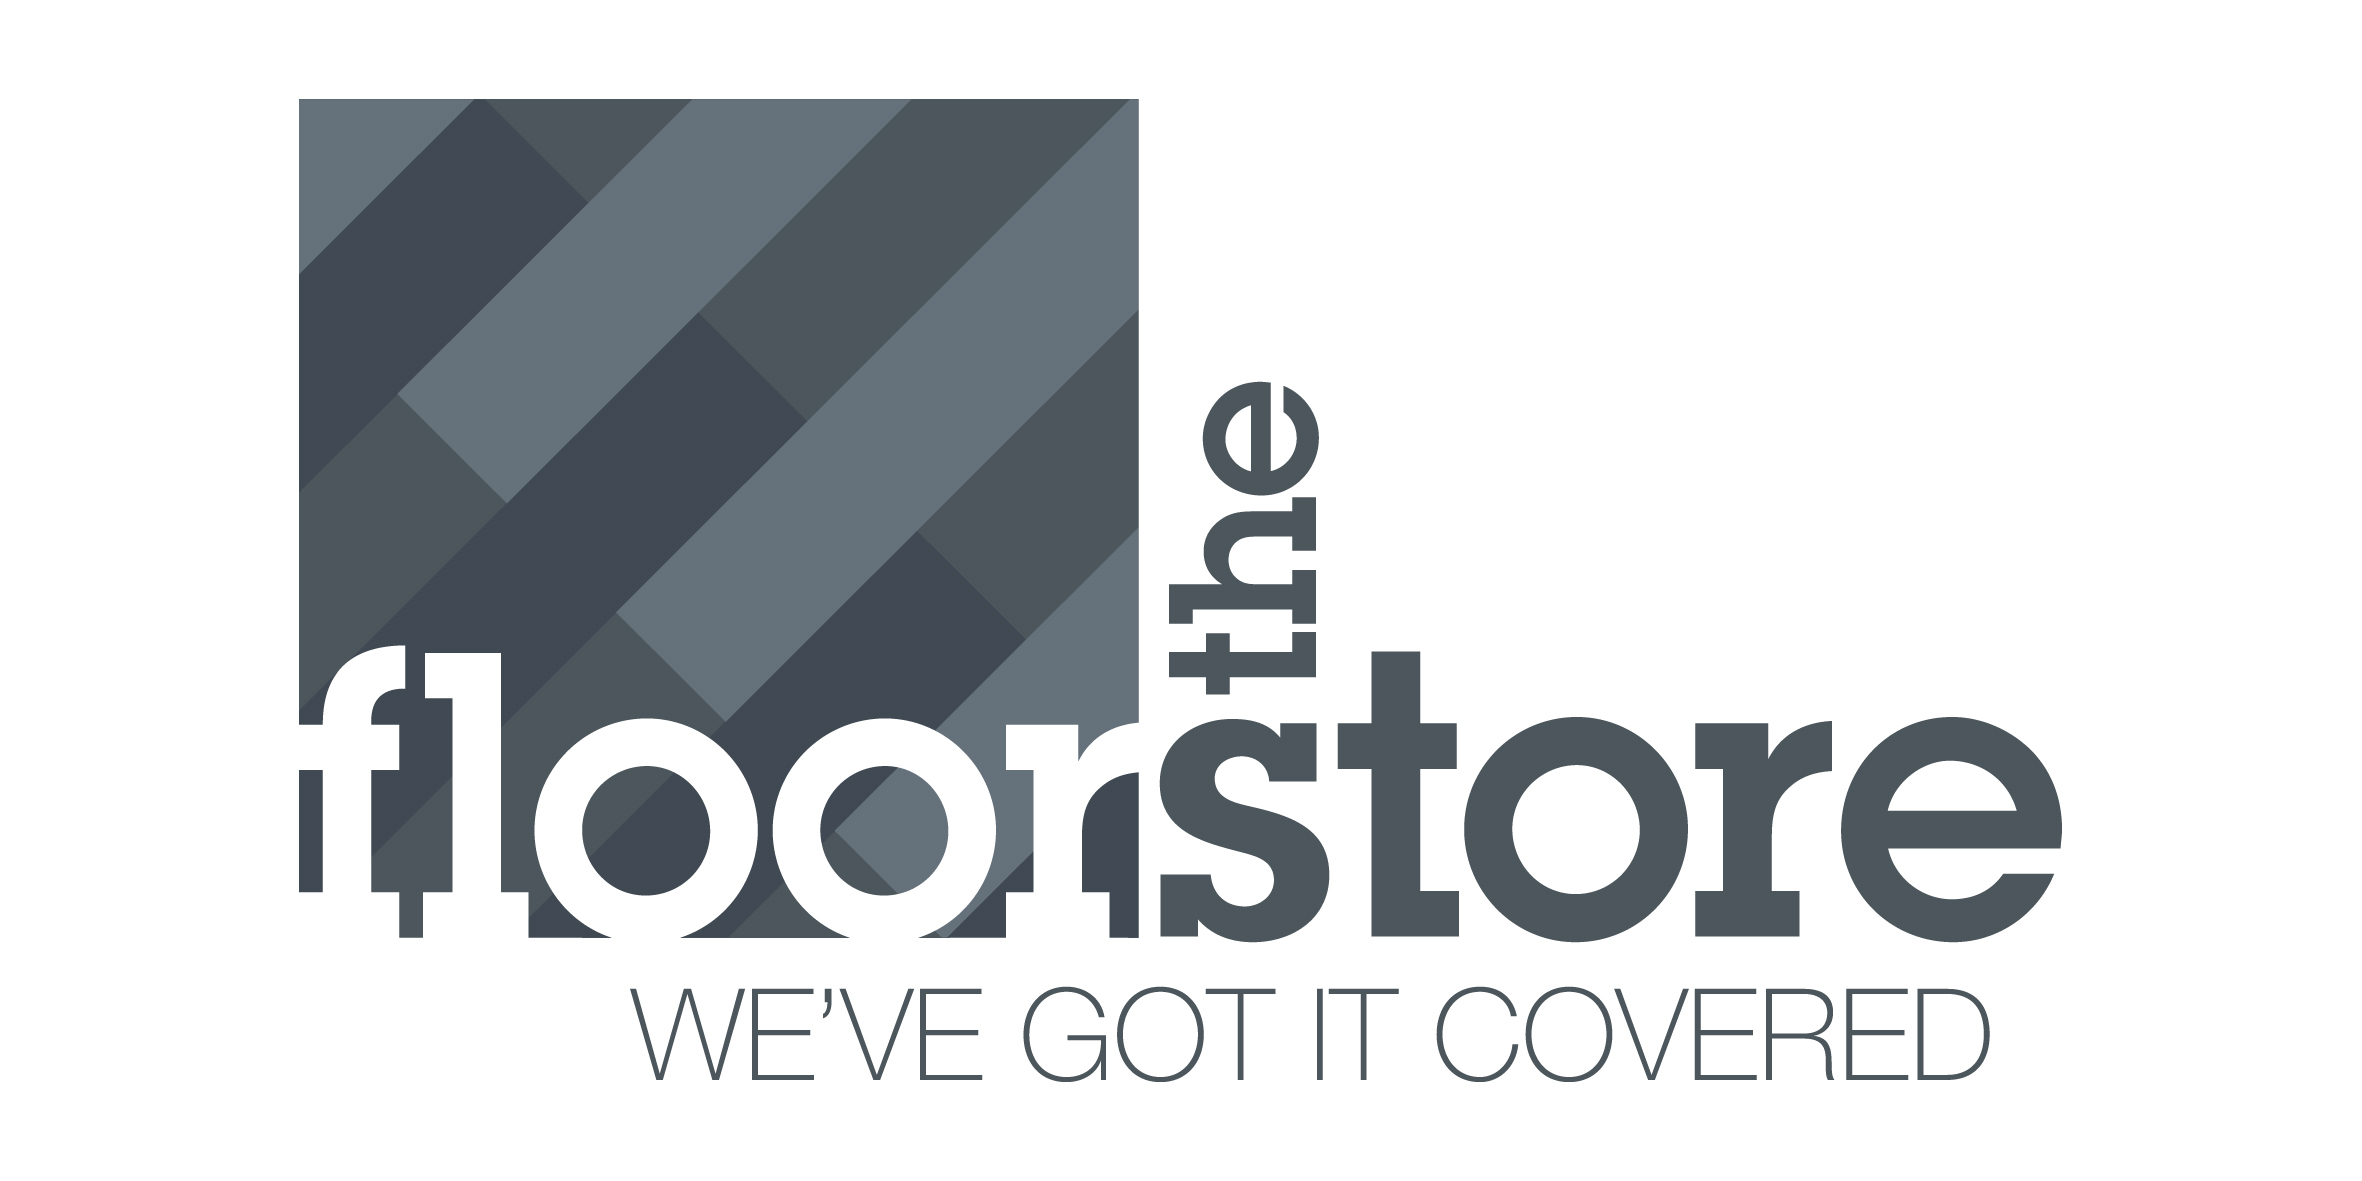 https://quicklinestorage.co.uk/wp-content/uploads/2016/04/FloorStoreLogo.jpg